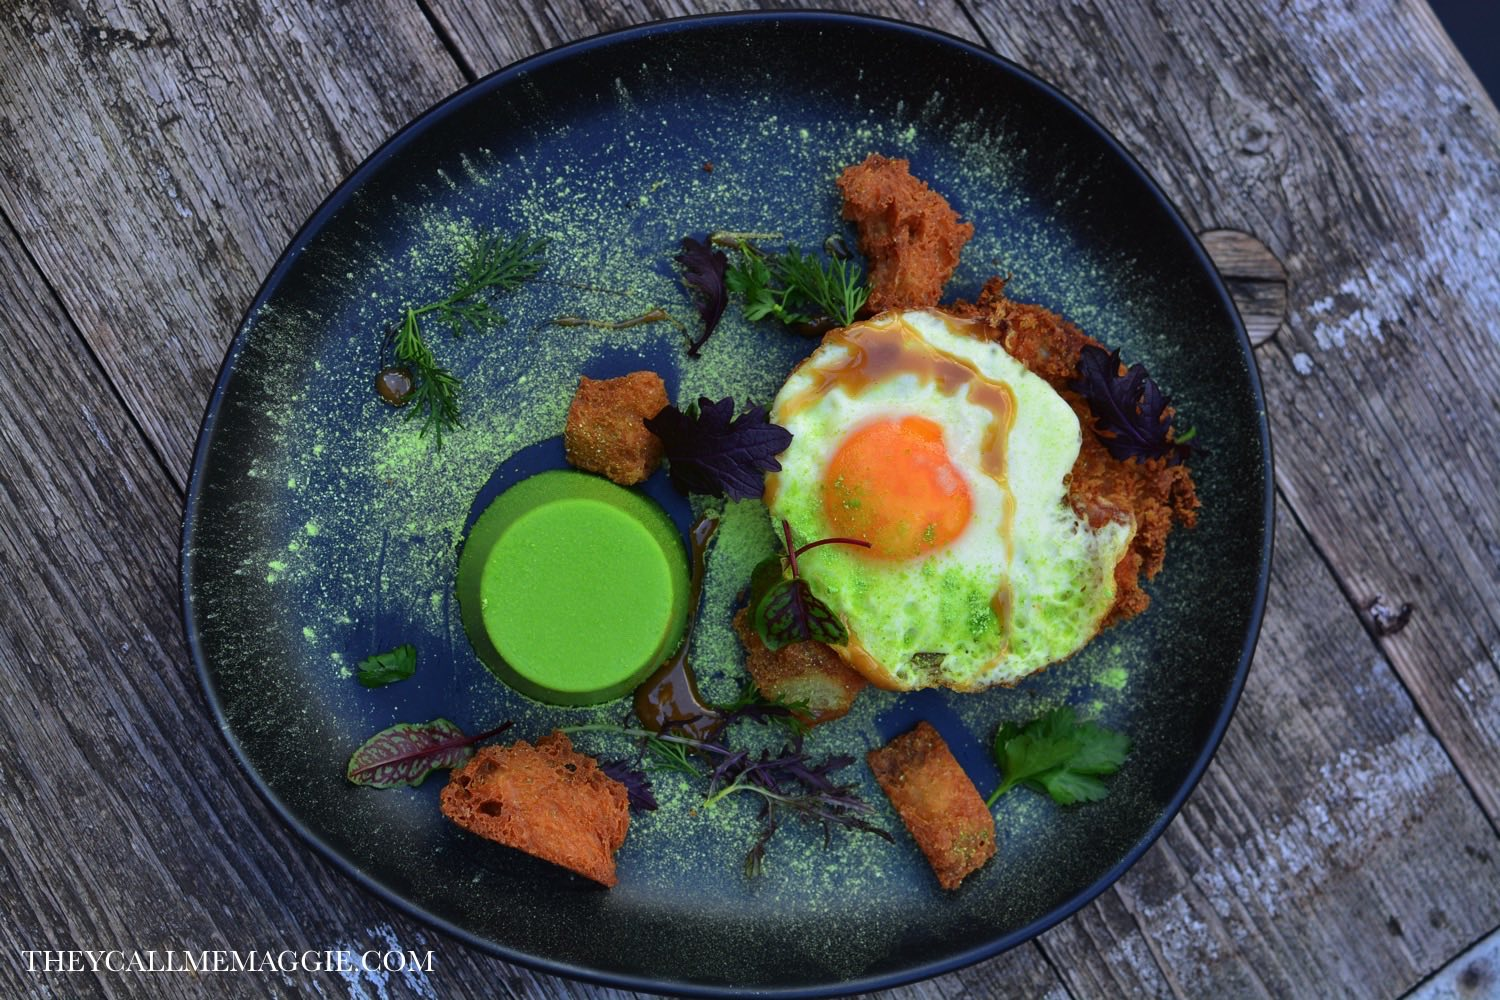 Crumbed ham hock with pea panna cotta, fried egg, pork jus and croutons.